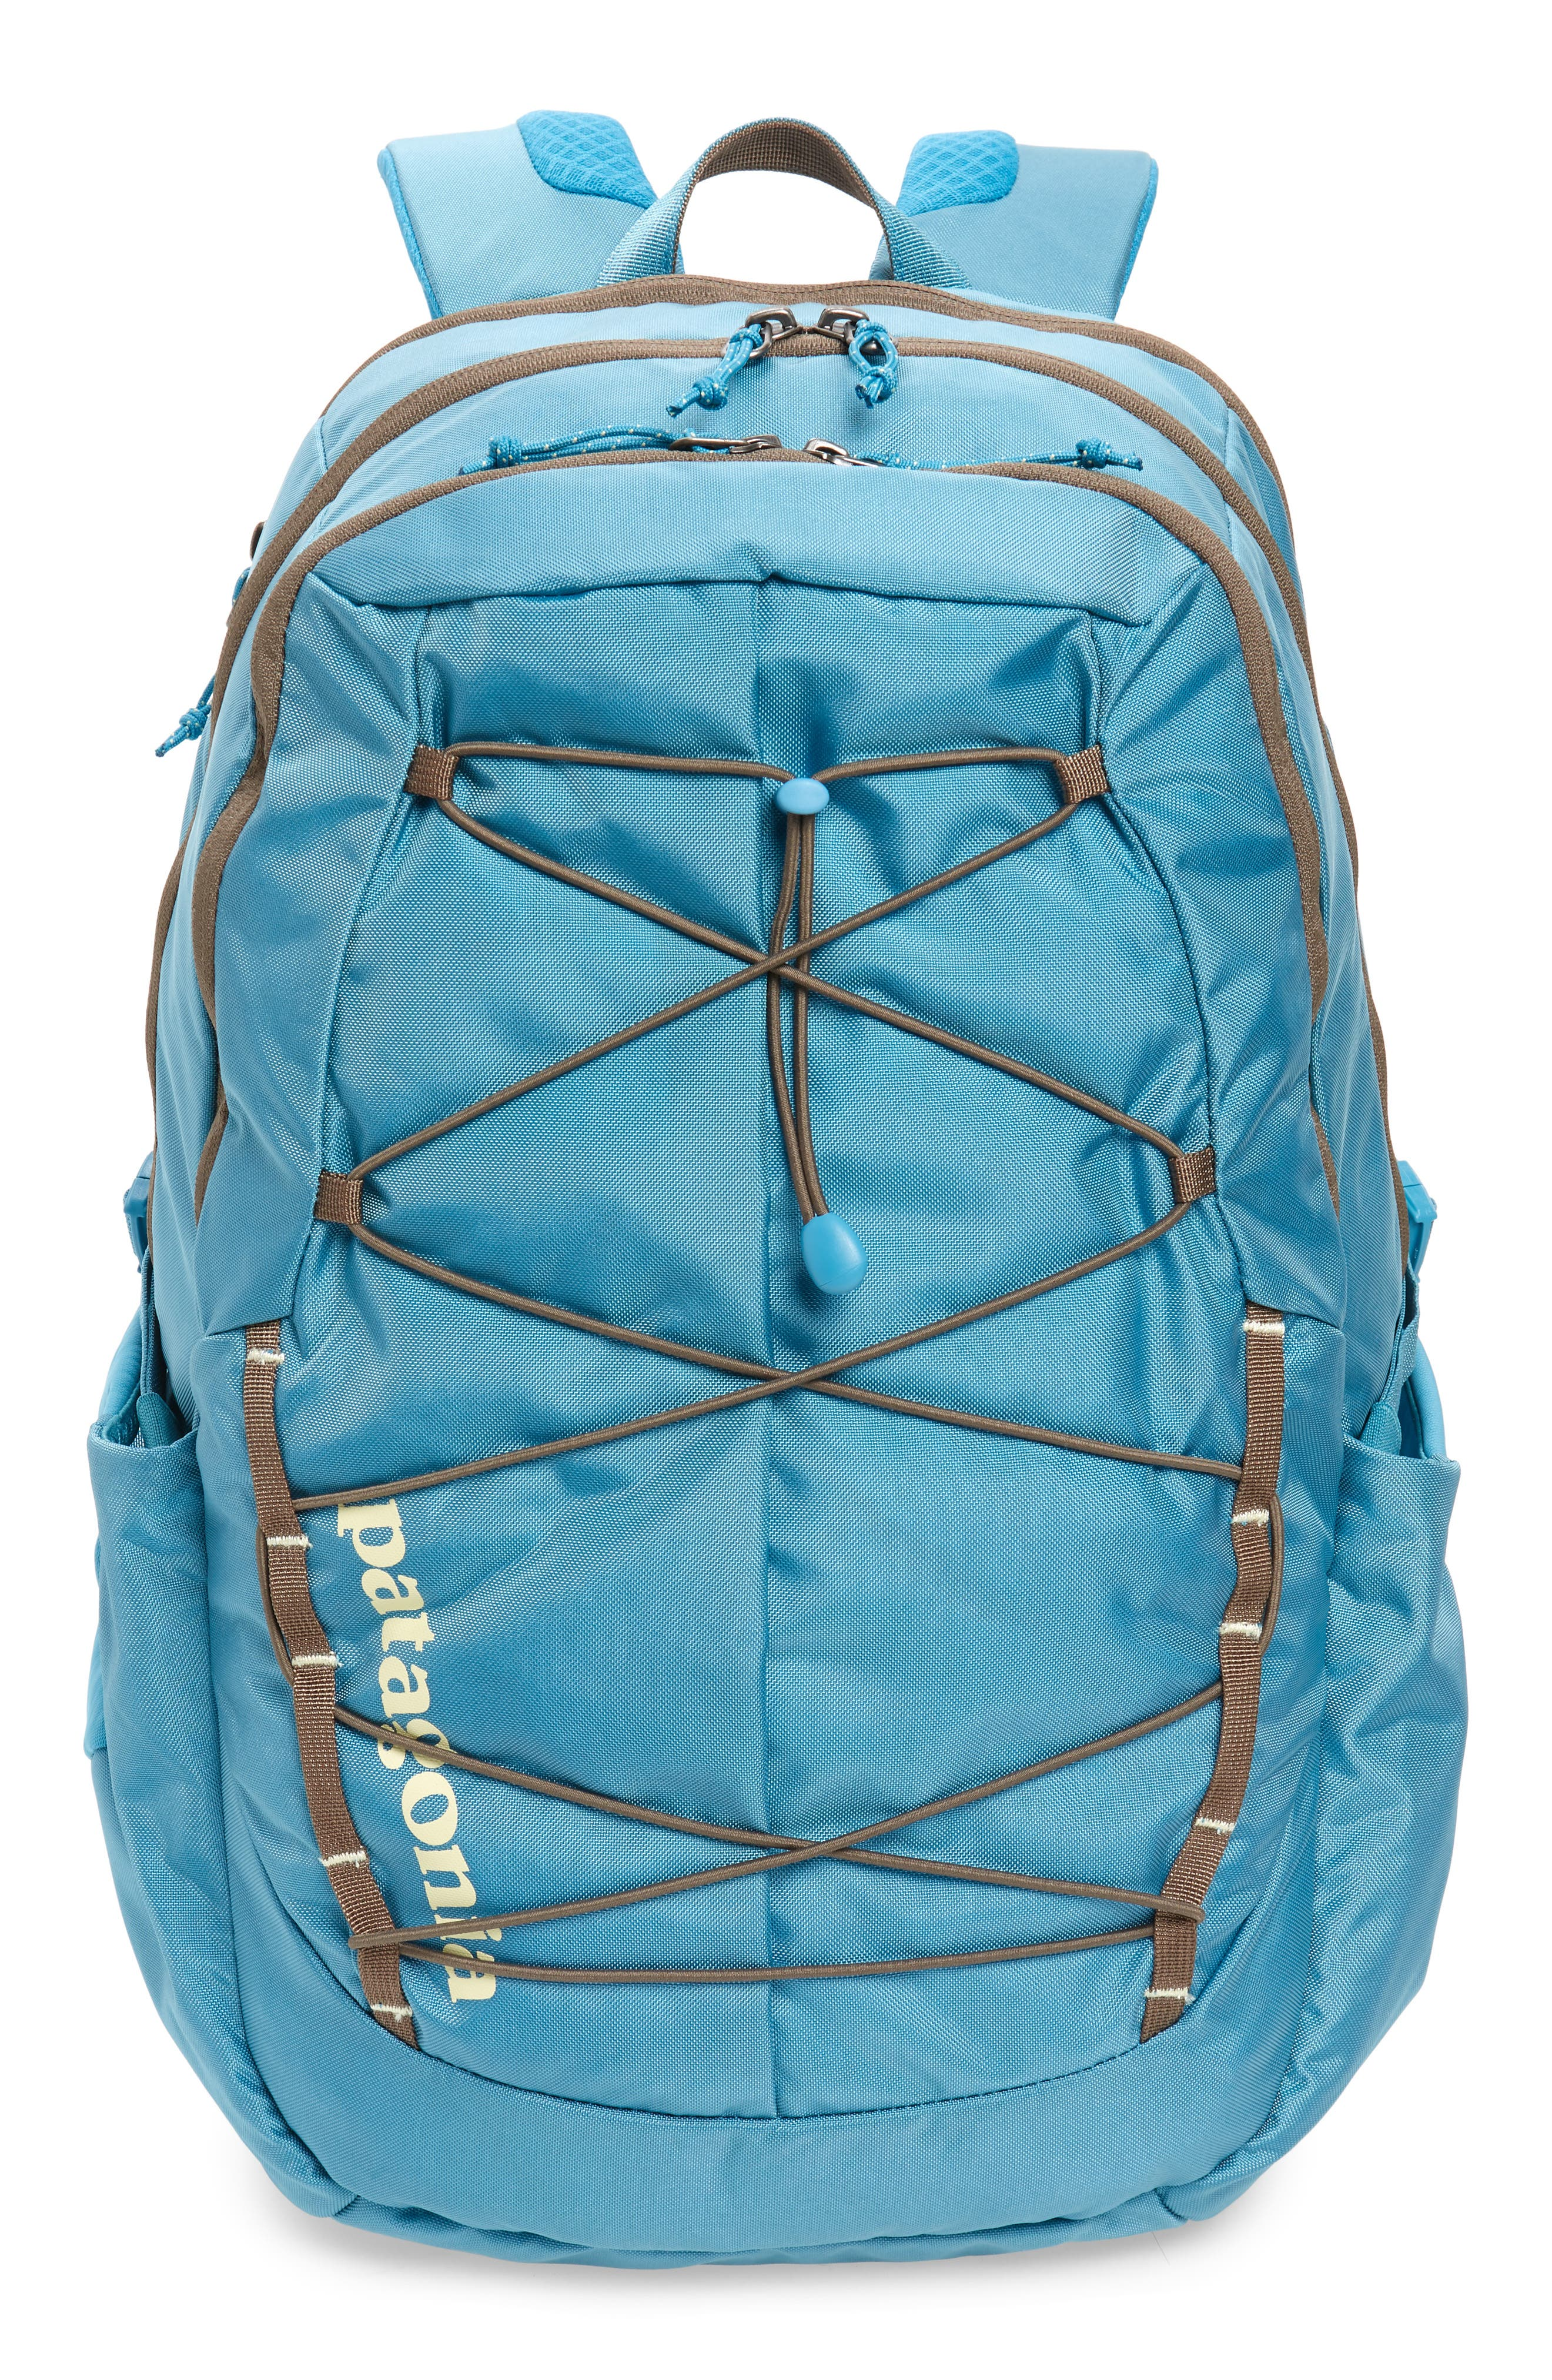 Patagonia Chacabuco 30-Liter Backpack - Blue